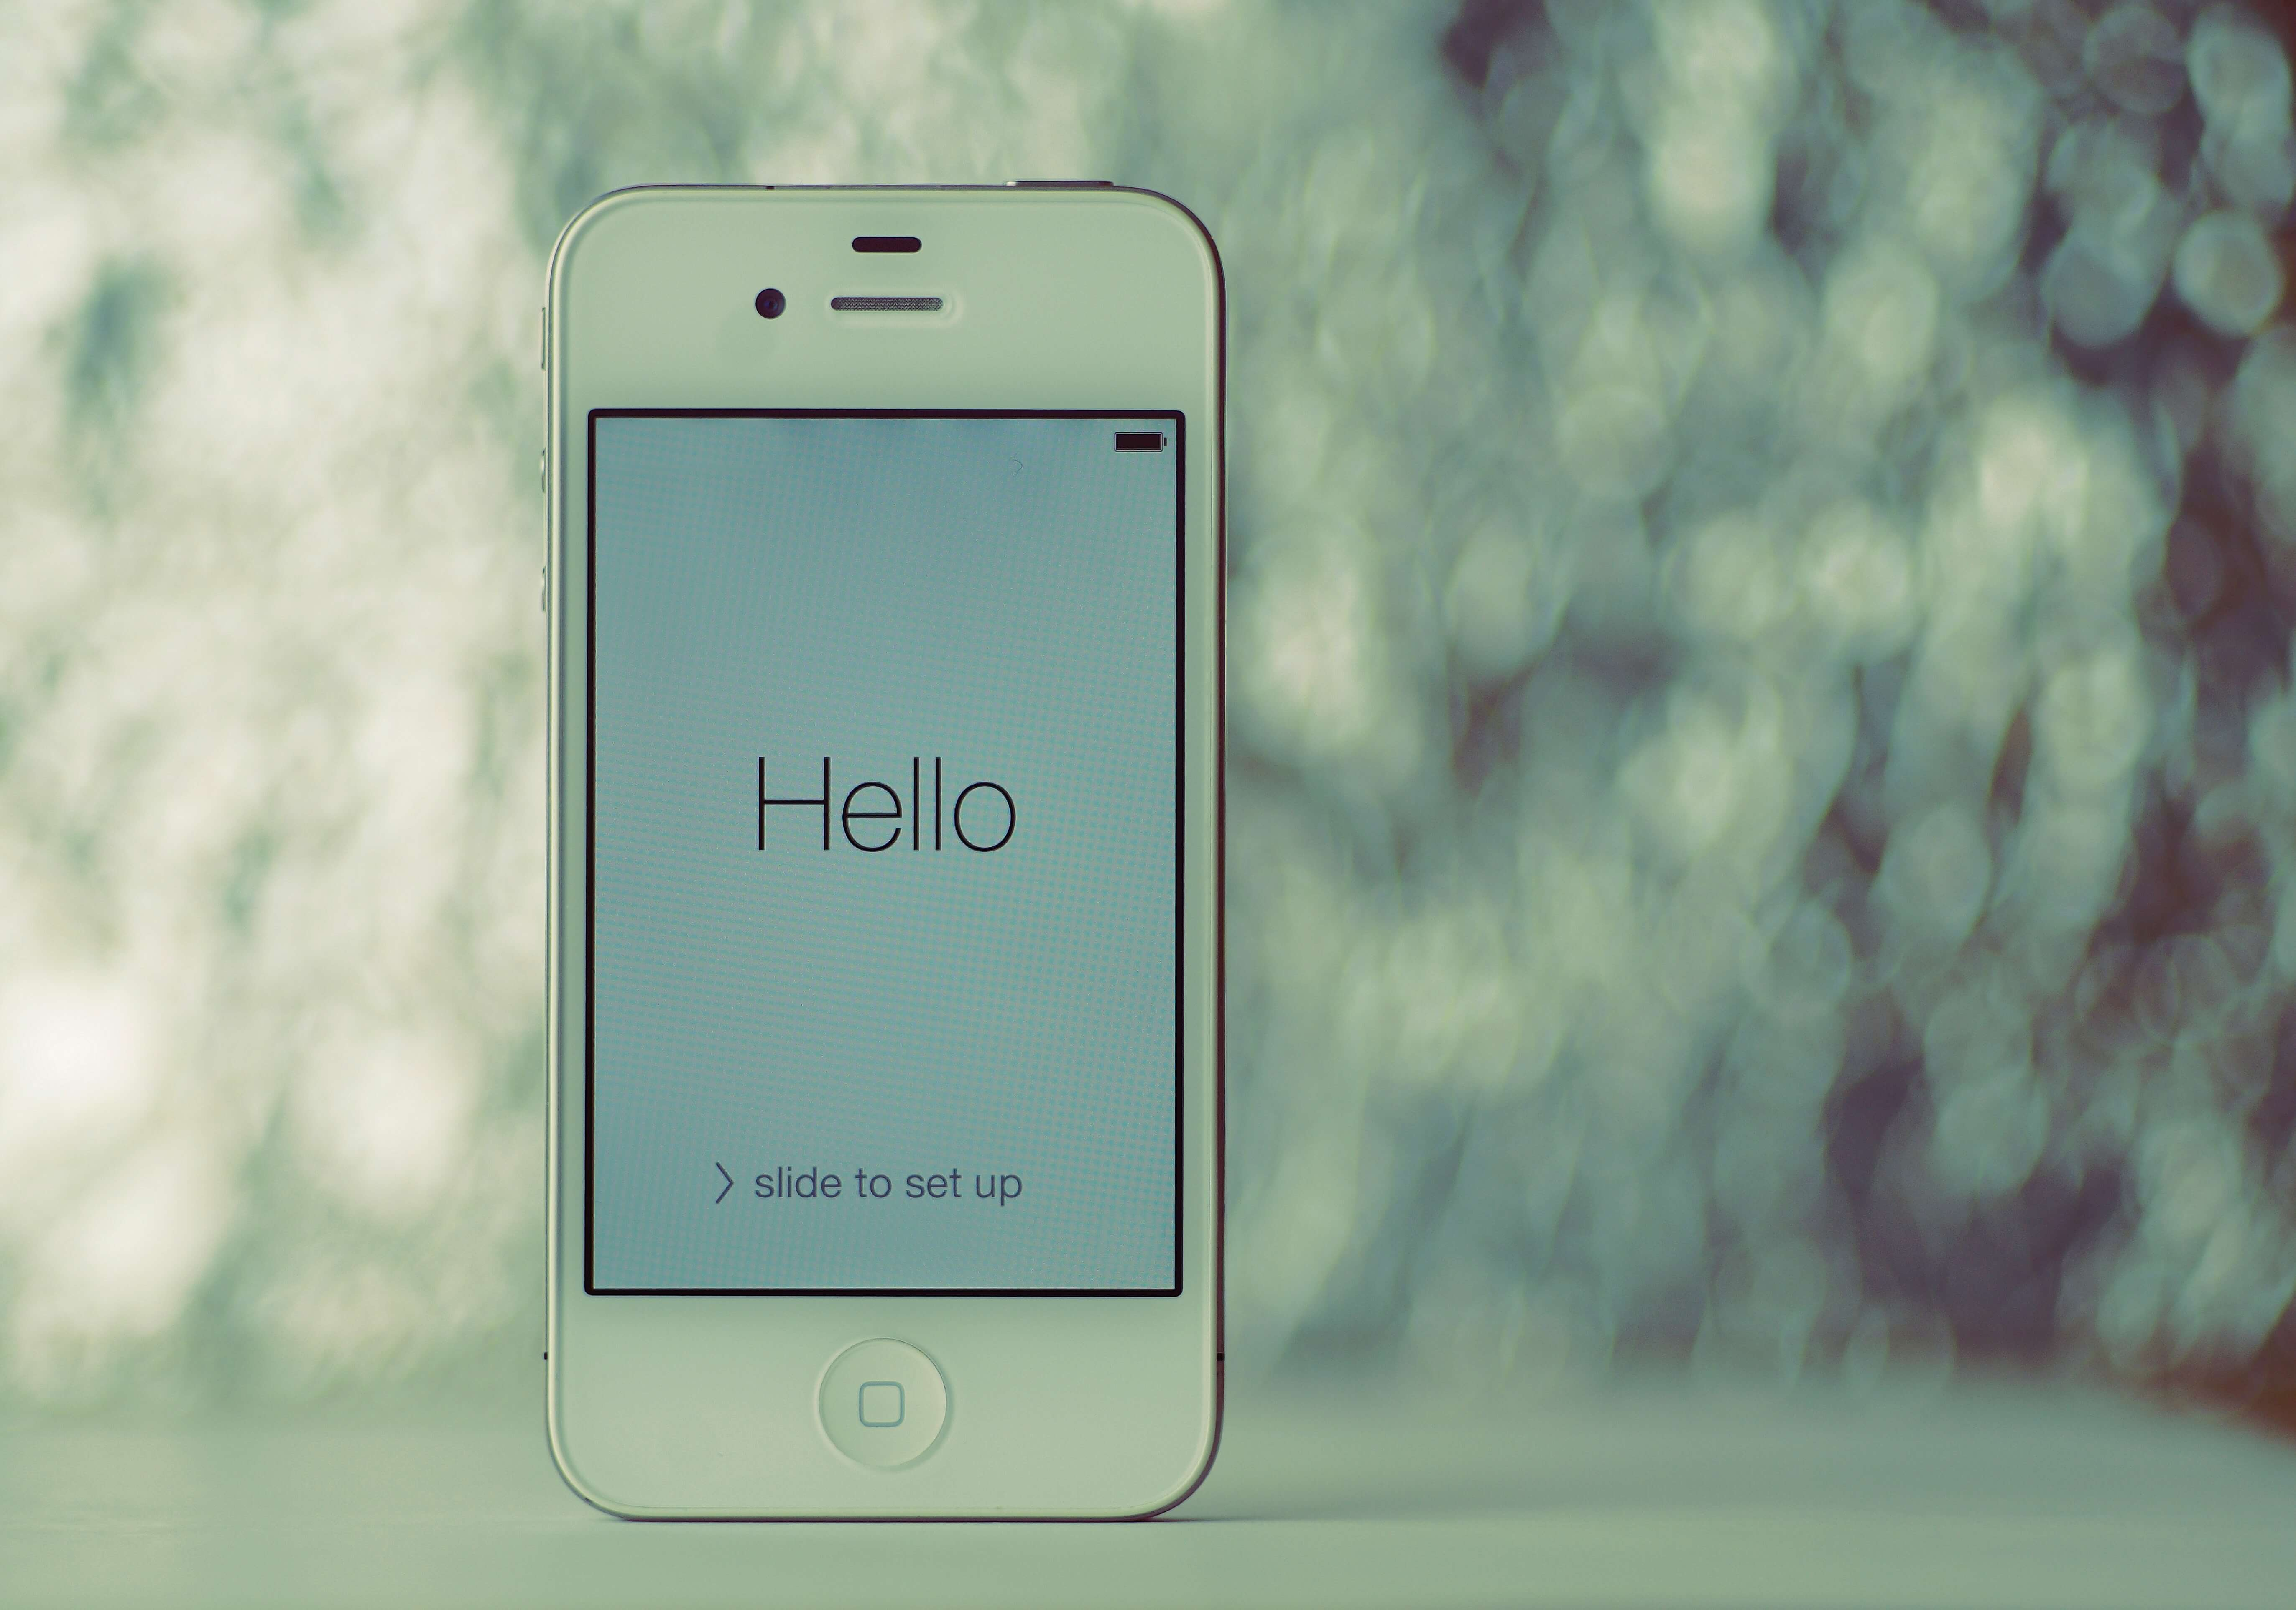 Hello Screen on iPhone